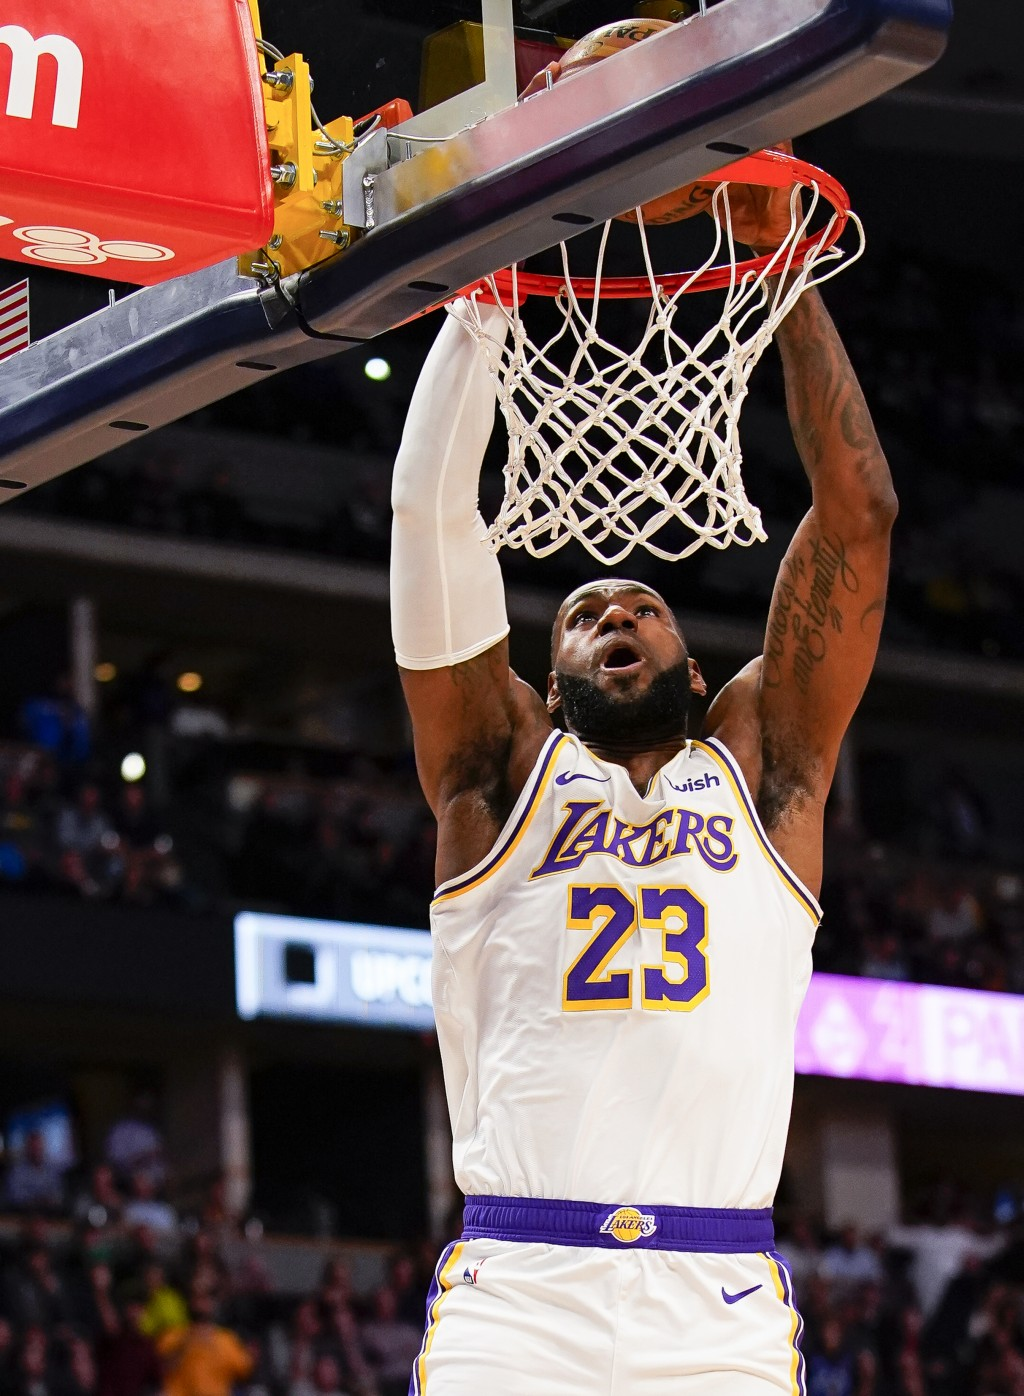 Los Angeles Lakers forward LeBron James dunks against the Denver Nuggets during the first quarter an NBA basketball game Tuesday, Dec. 3, 2019, in Den...